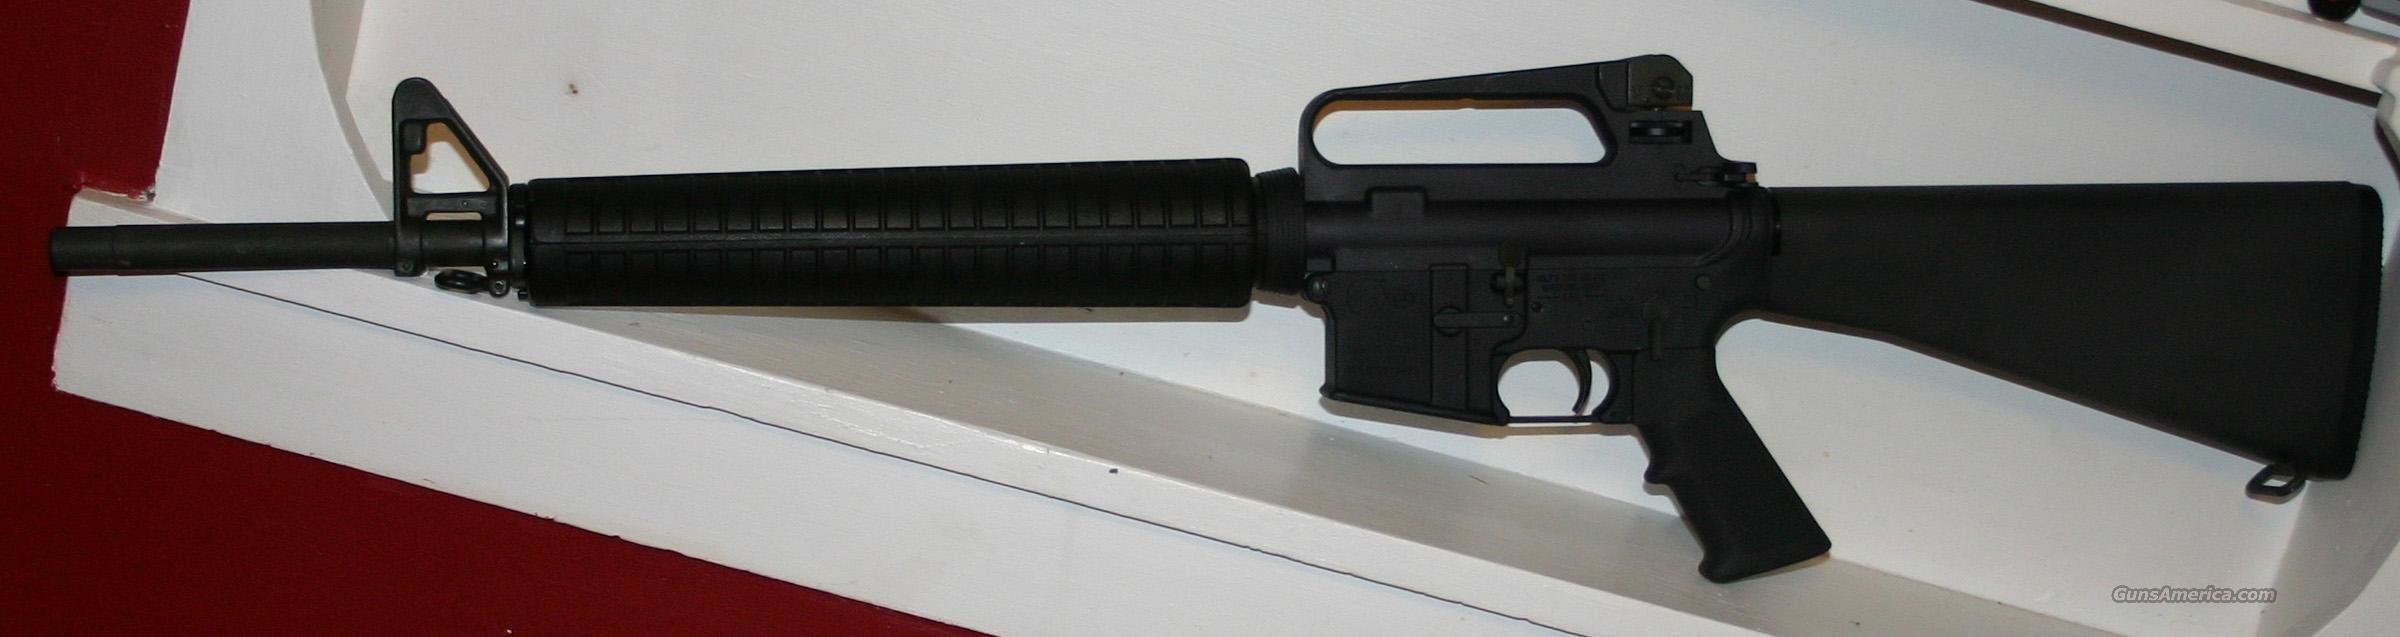 "Colt AR-15 Match Target 20"" heavy bbl .223 rem 5.56mm  Guns > Rifles > Colt Military/Tactical Rifles"